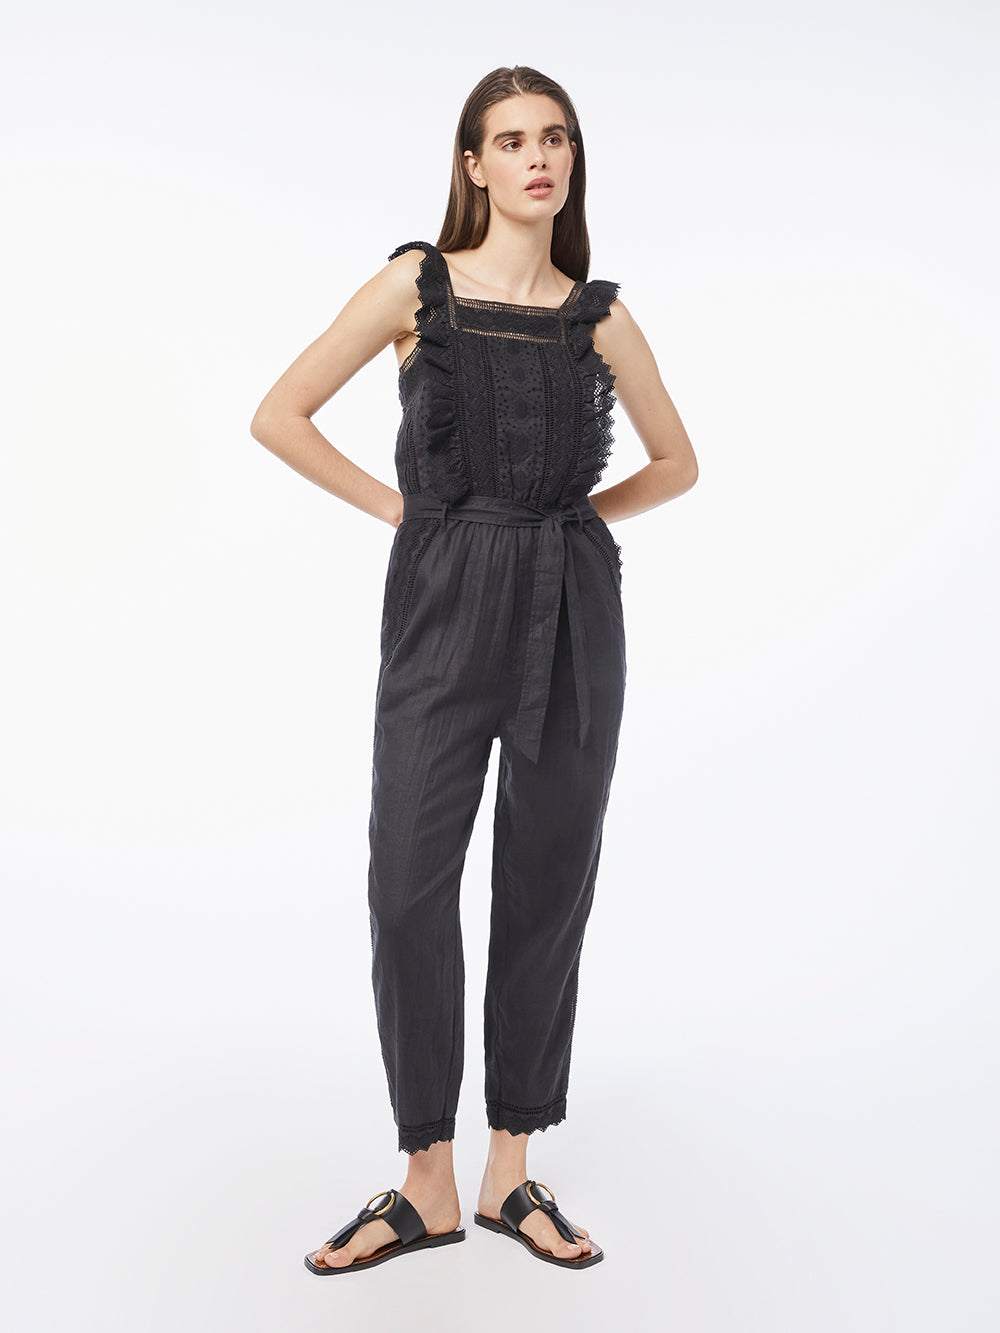 jumpsuit front full body view